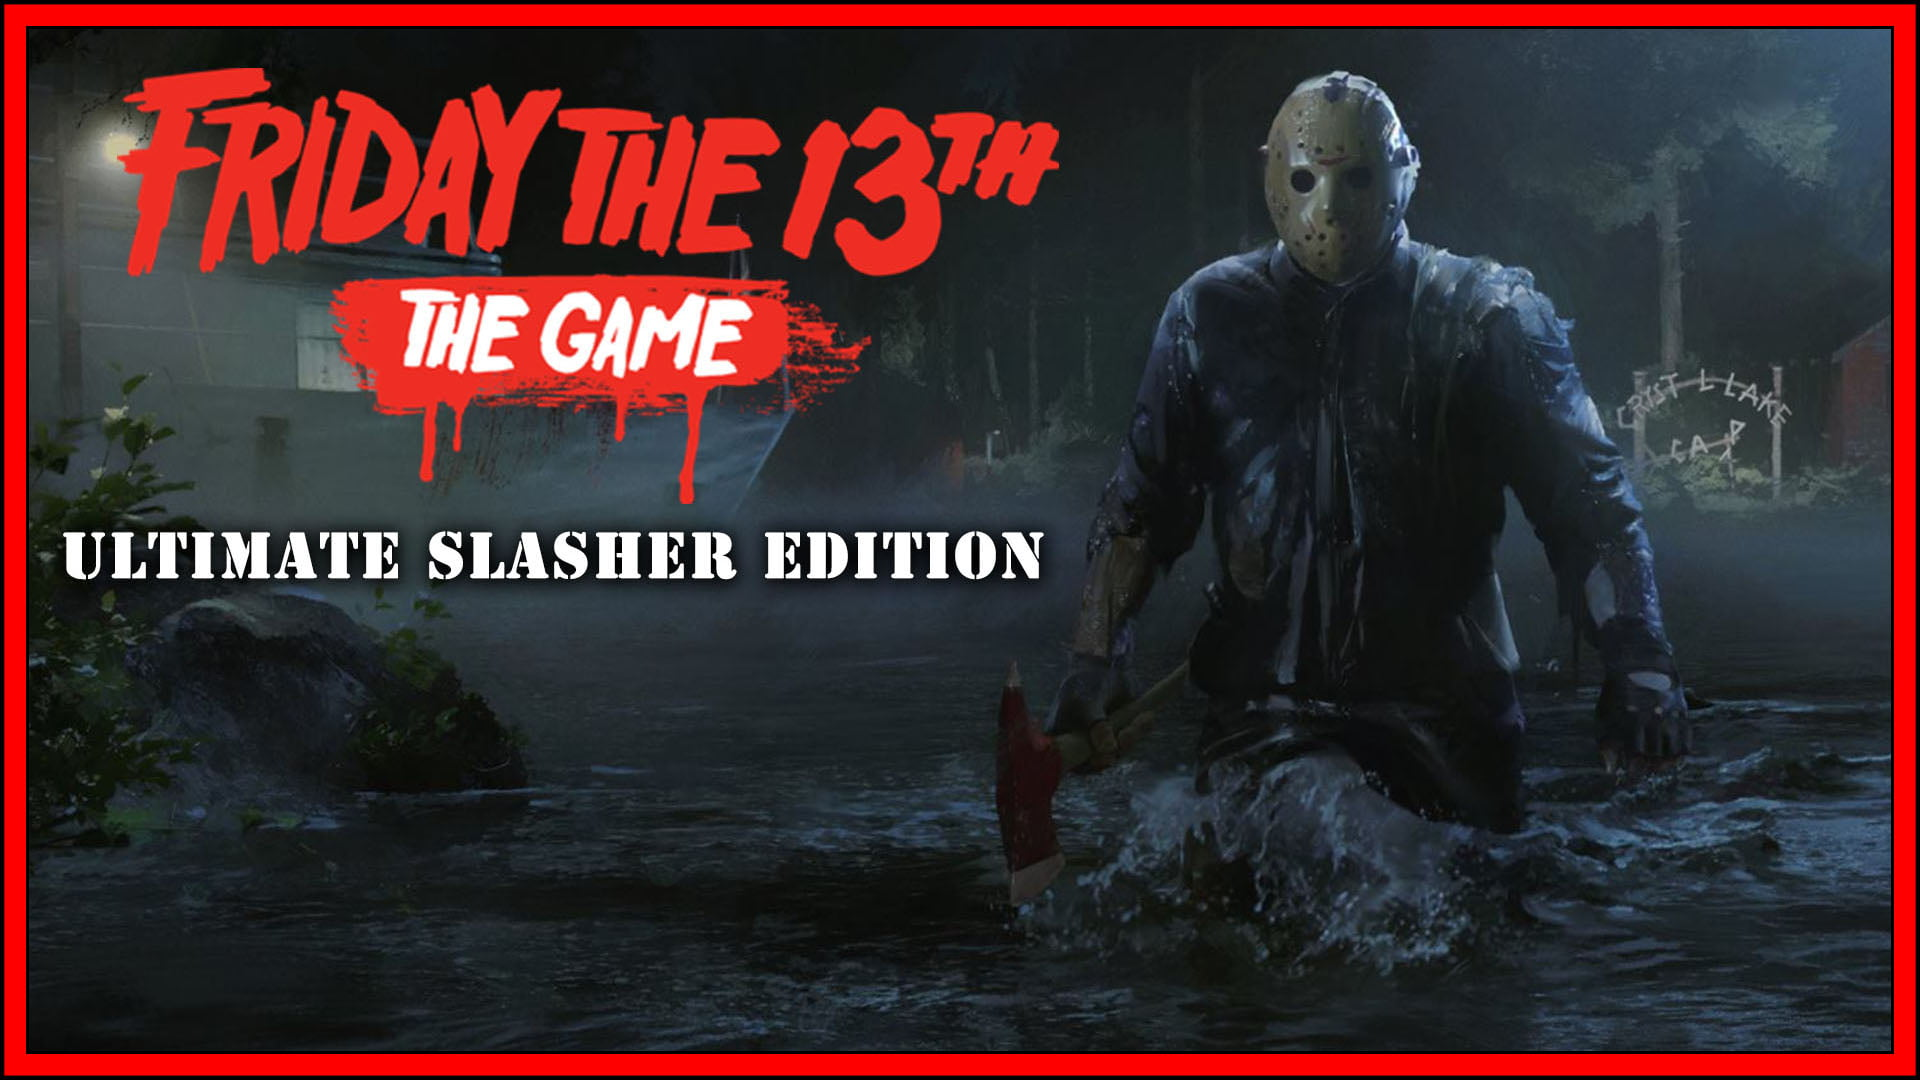 Friday the 13th: The Game Ultimate Slasher Edition (Nintendo Switch) Review